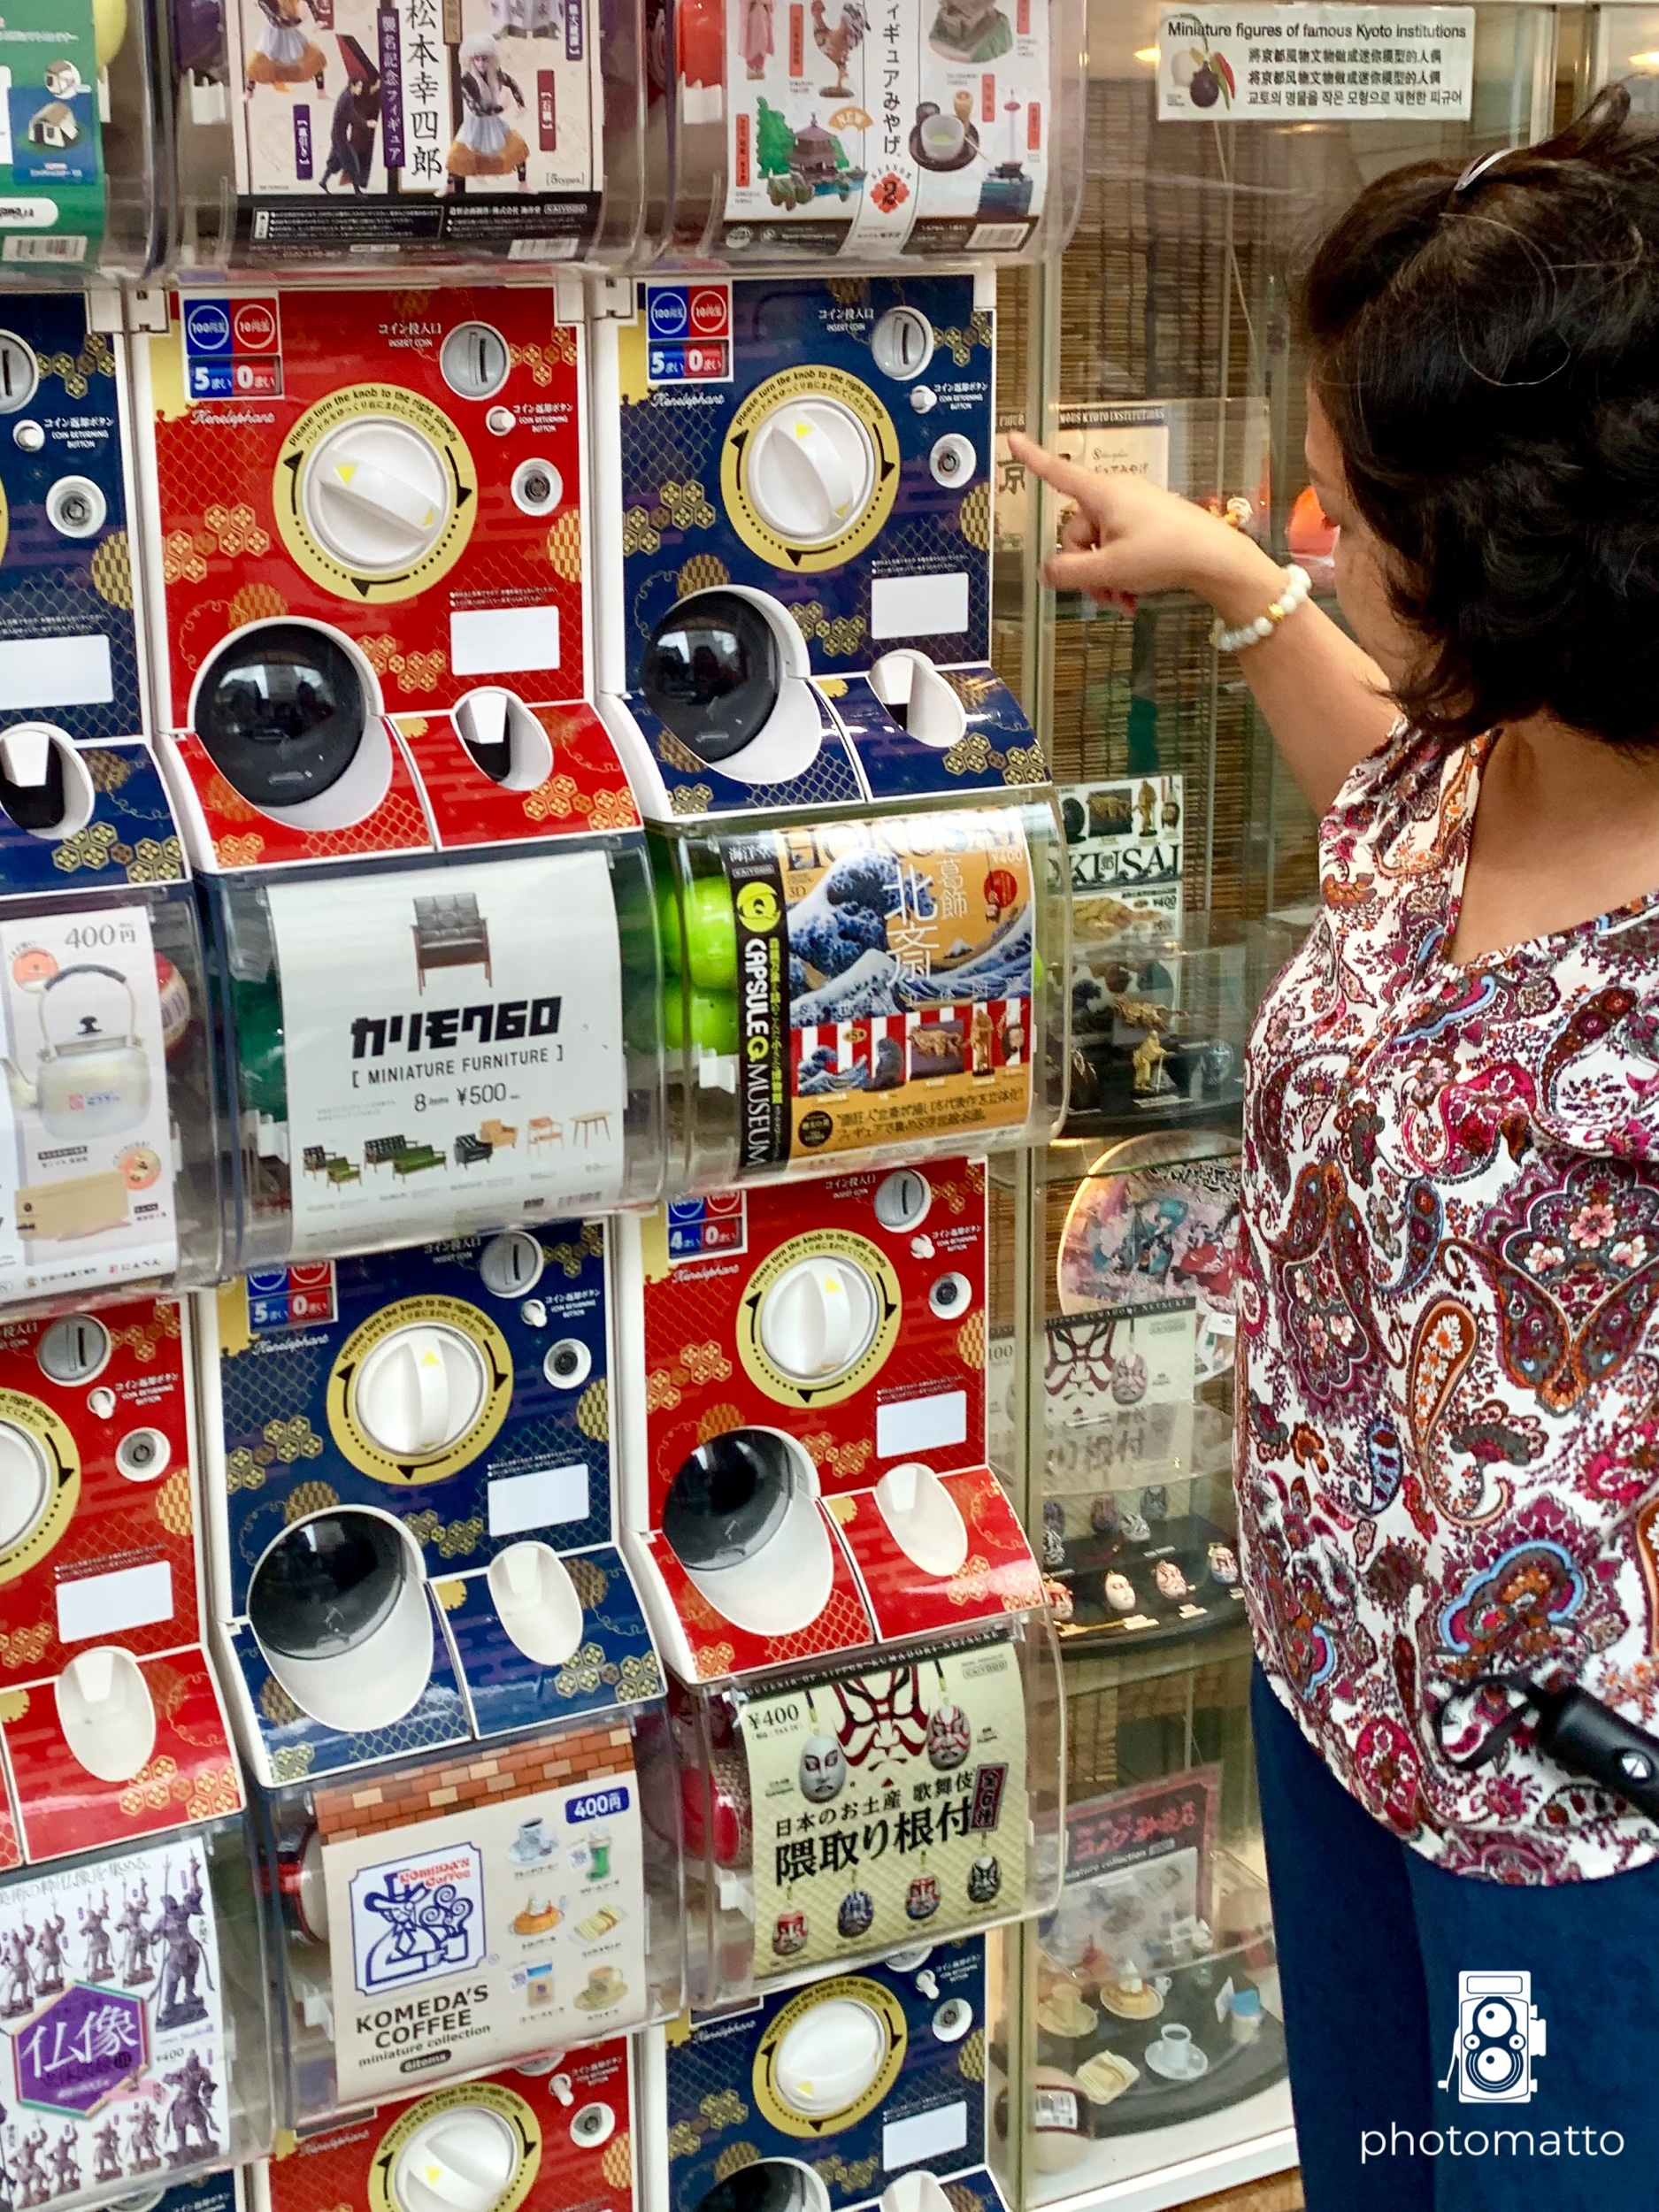 So many different kinds of vending machines. These capsule machines were filled with cute toys and trinkets.